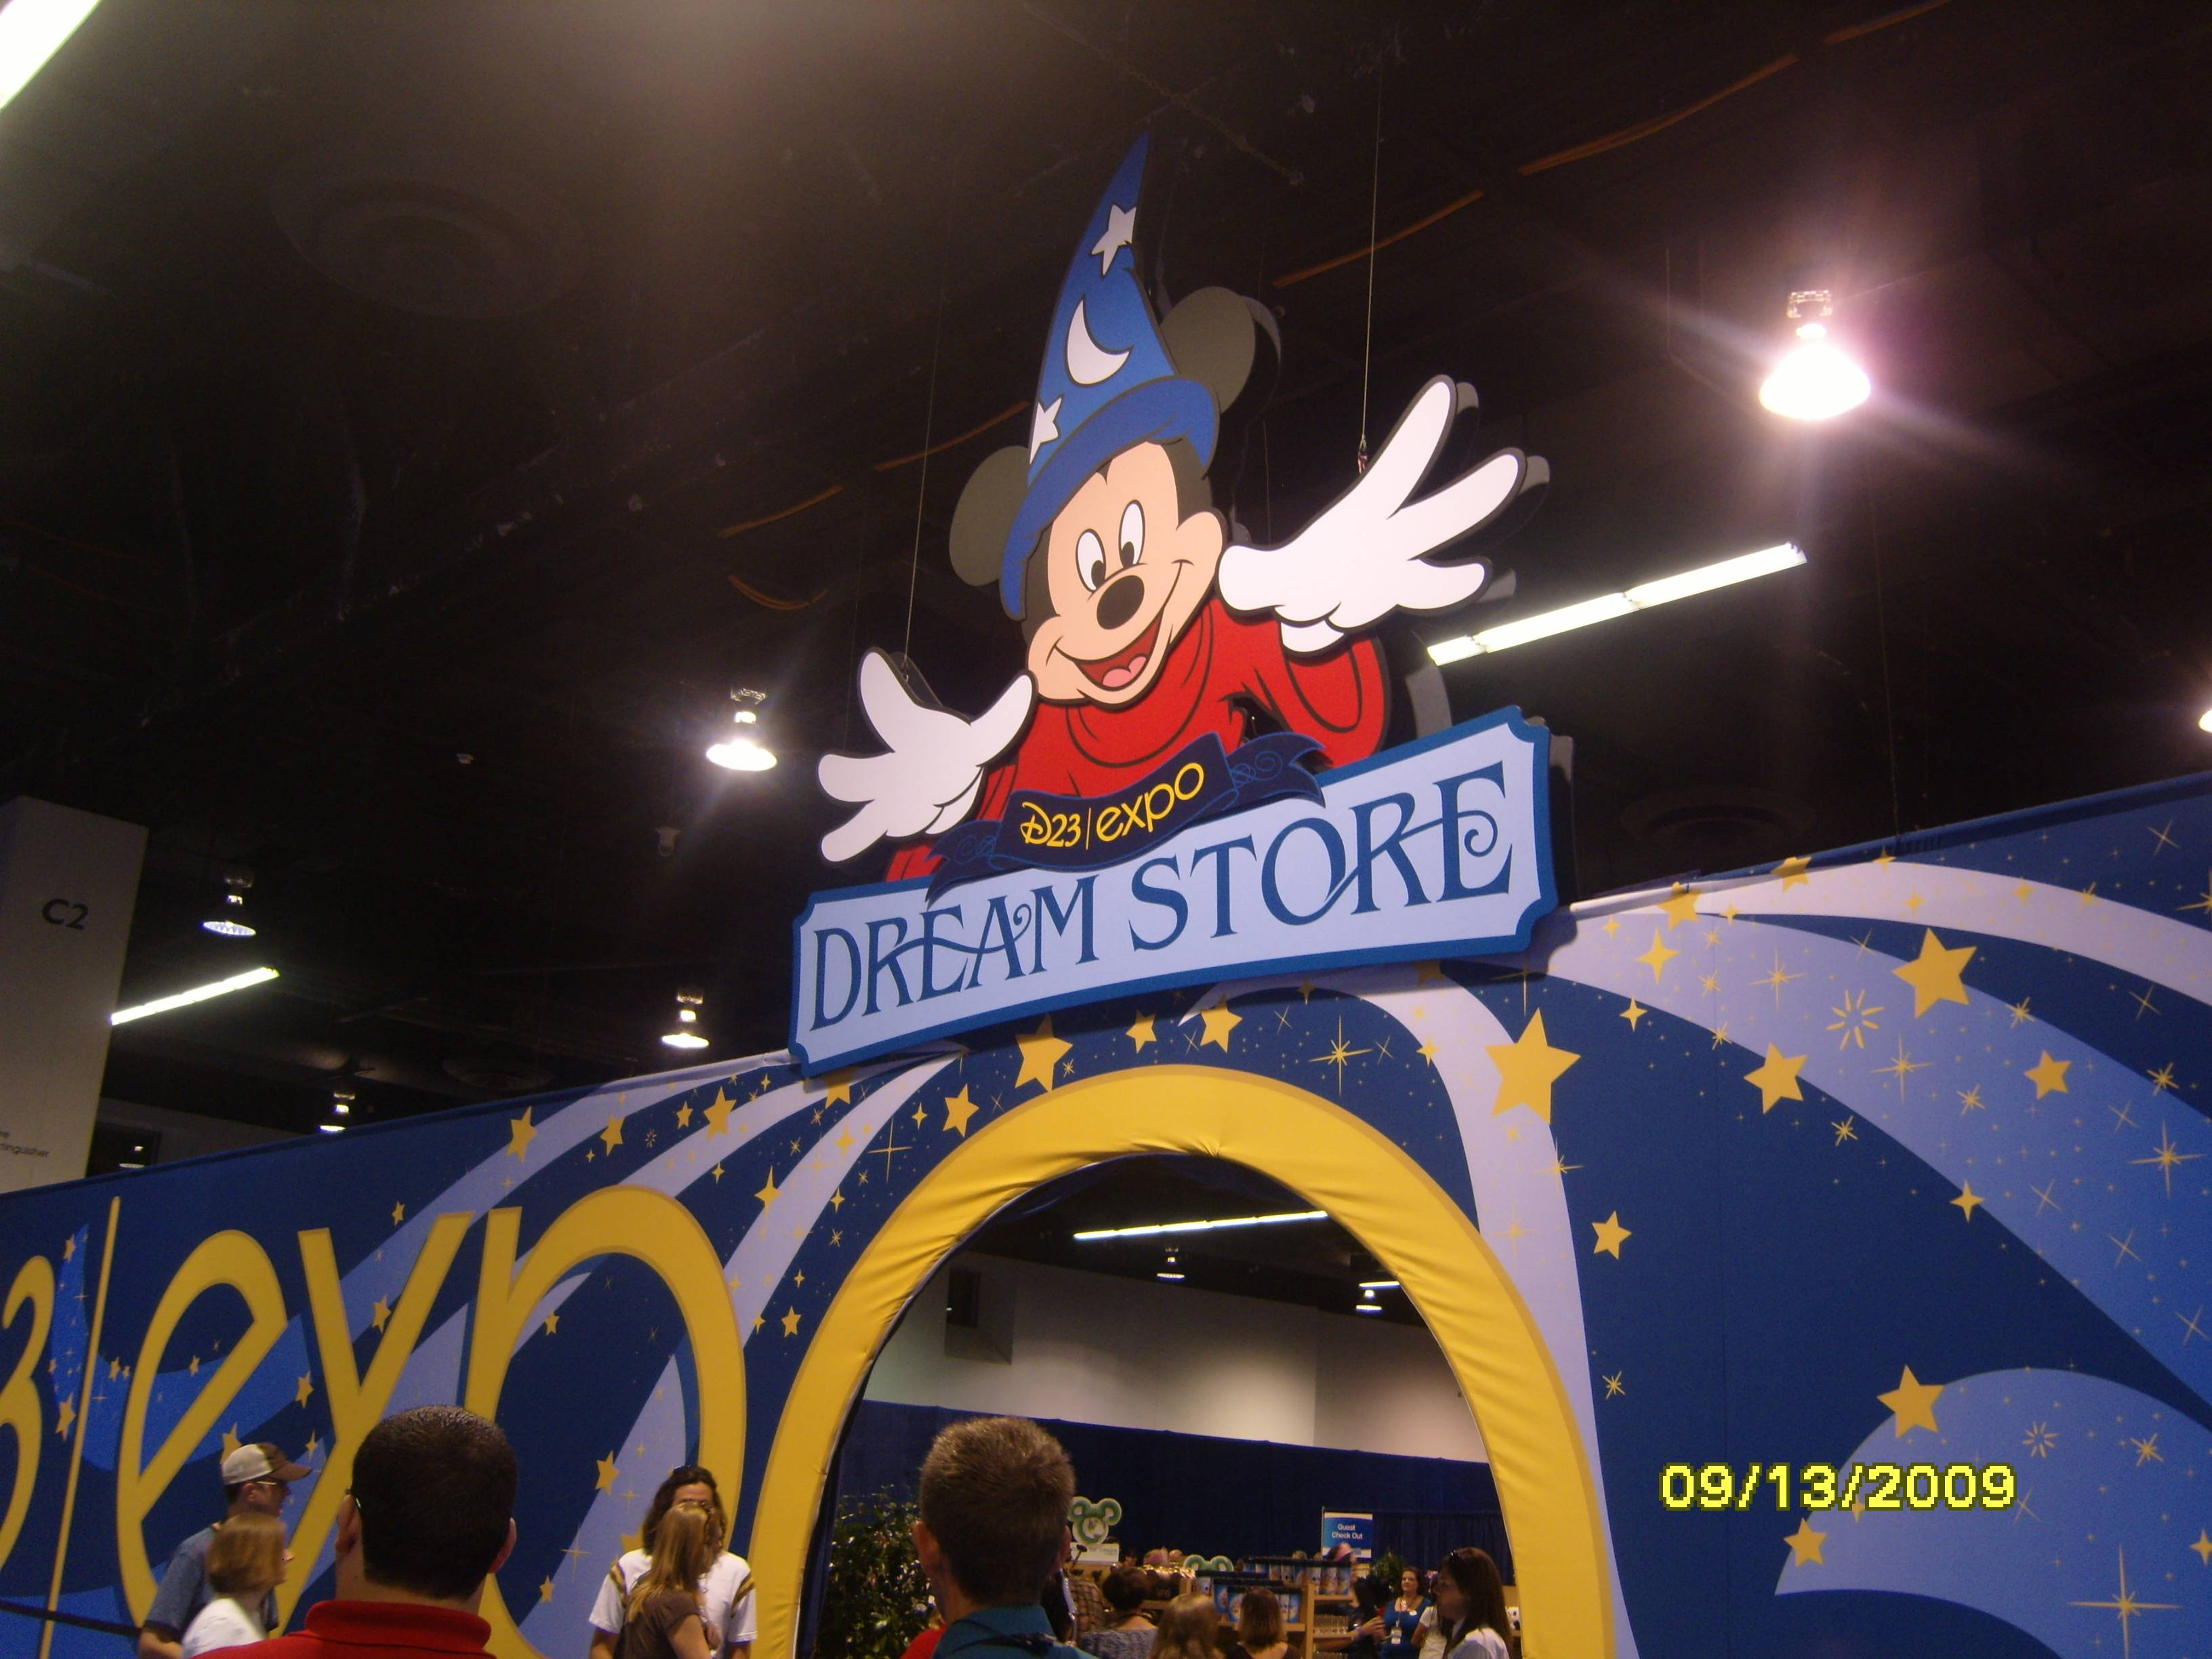 D23 Expo: Dream Store